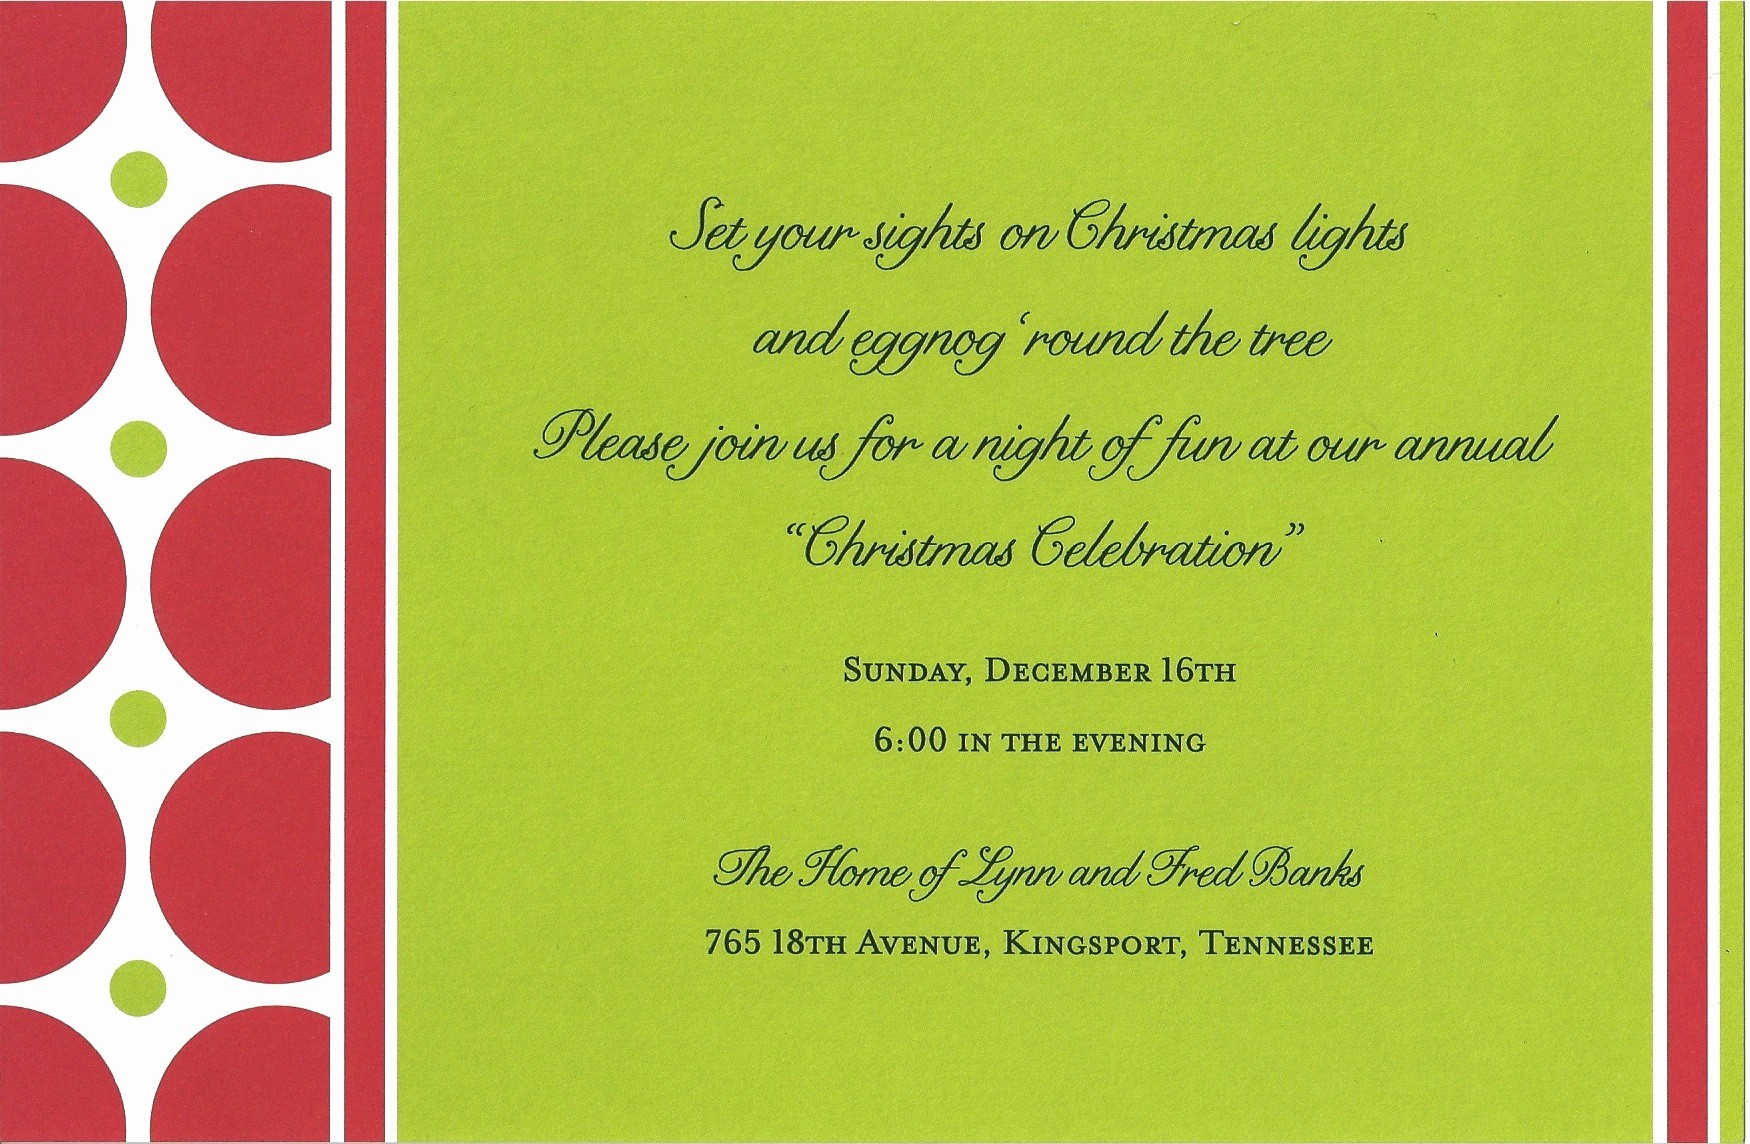 Annual Holiday Party Invitation Template Luxury Exciting Christmas Party Invitation Wording as Unique